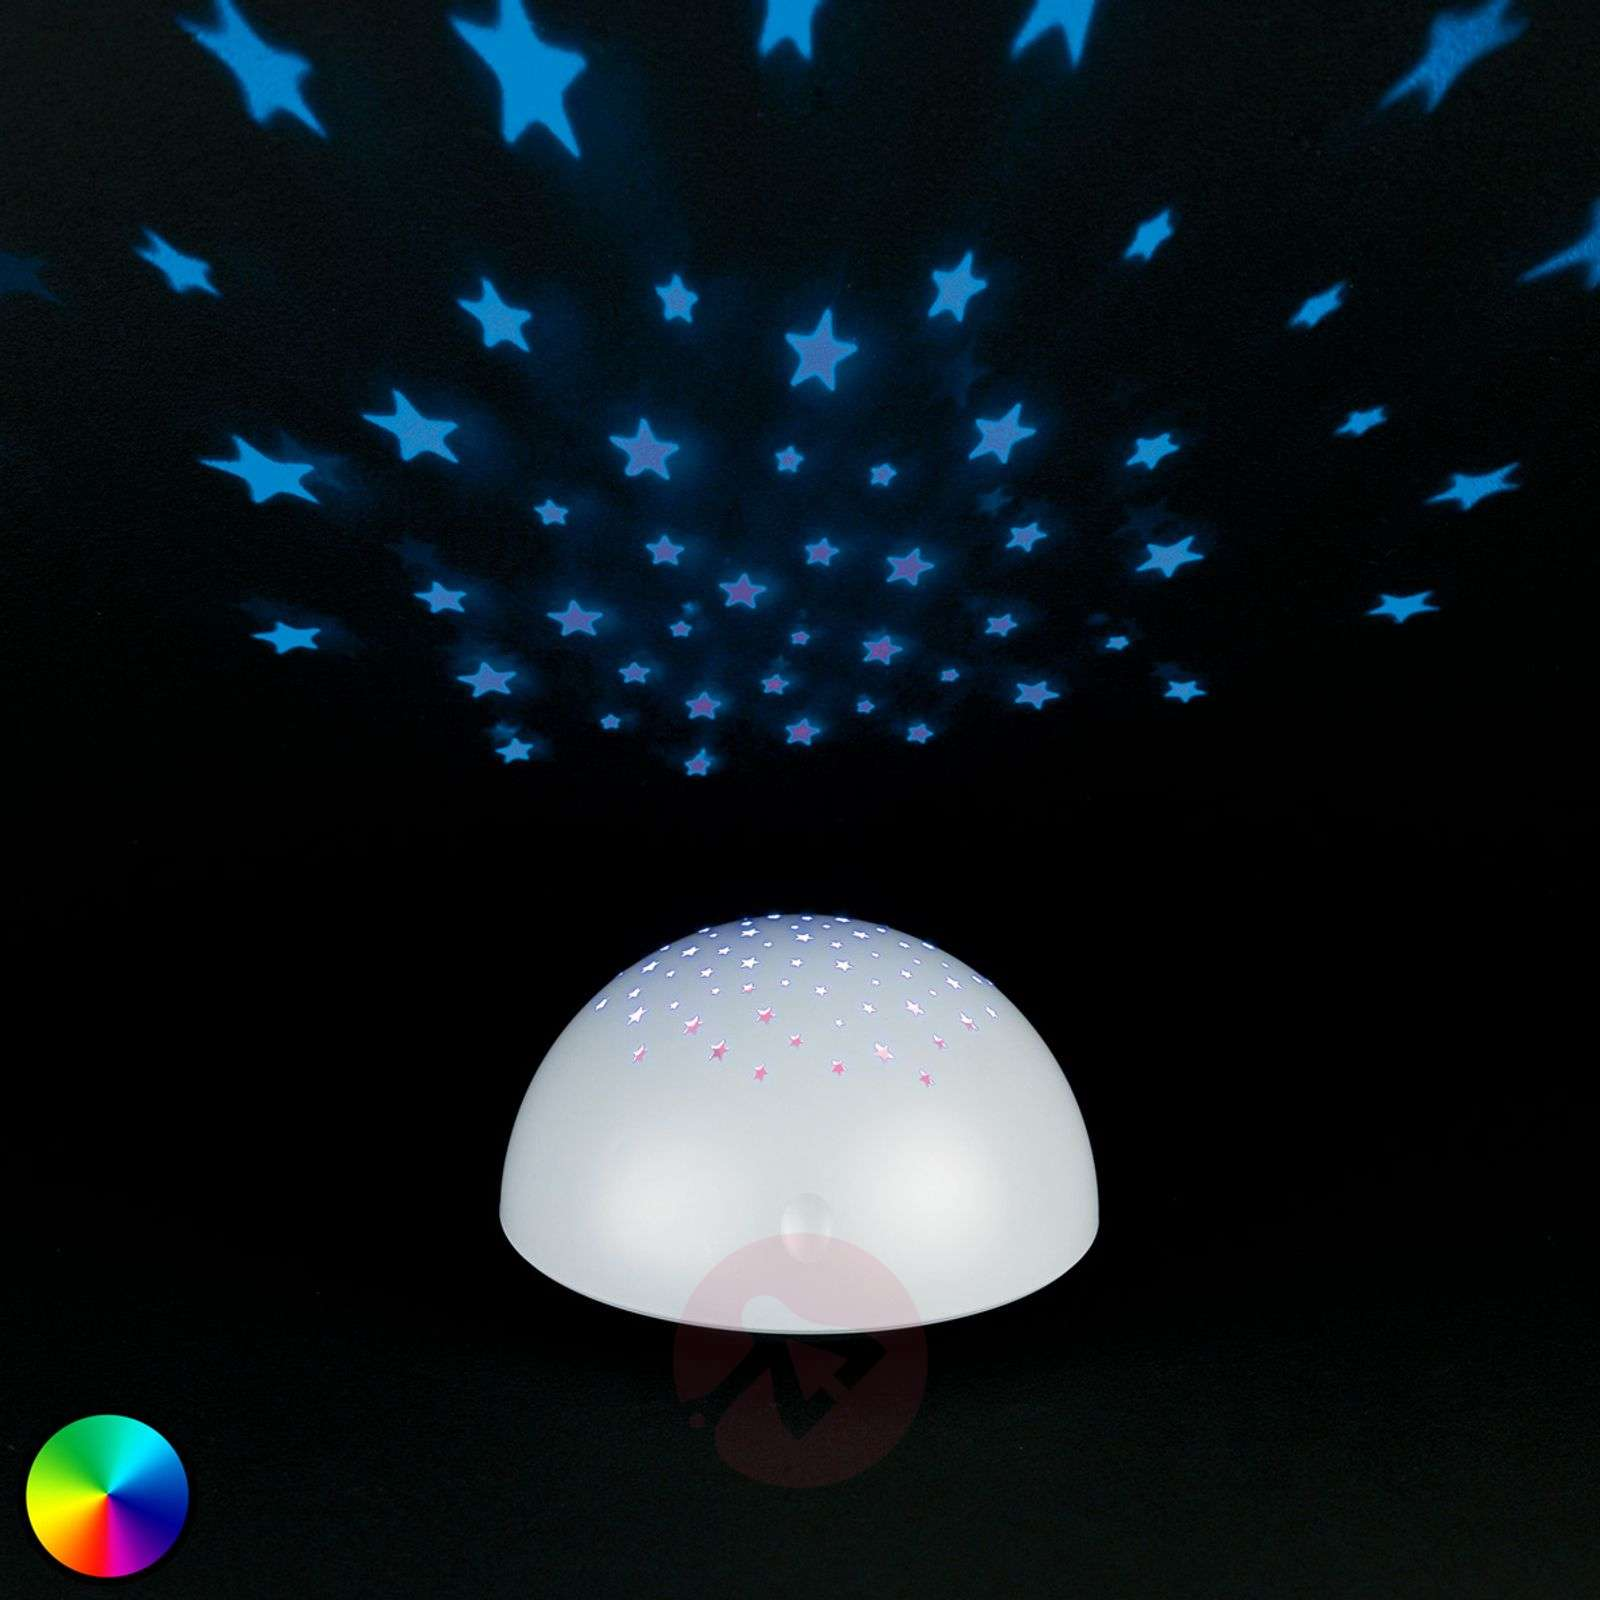 Starry sky allur. with the Sirius LED deco light-8029075-01